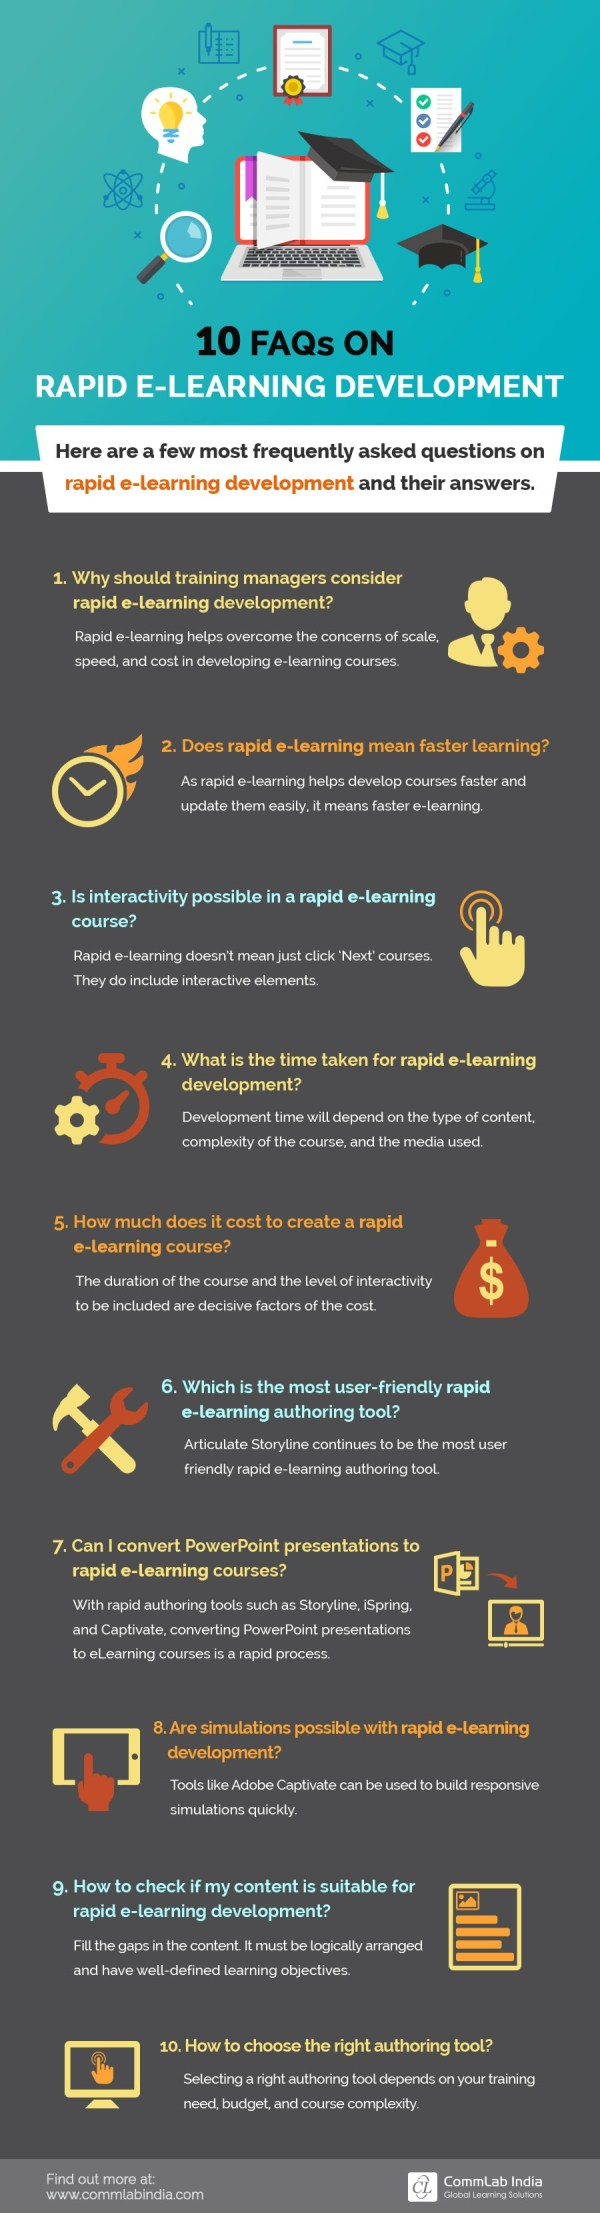 Faqs Rapid -learning Development Infographic